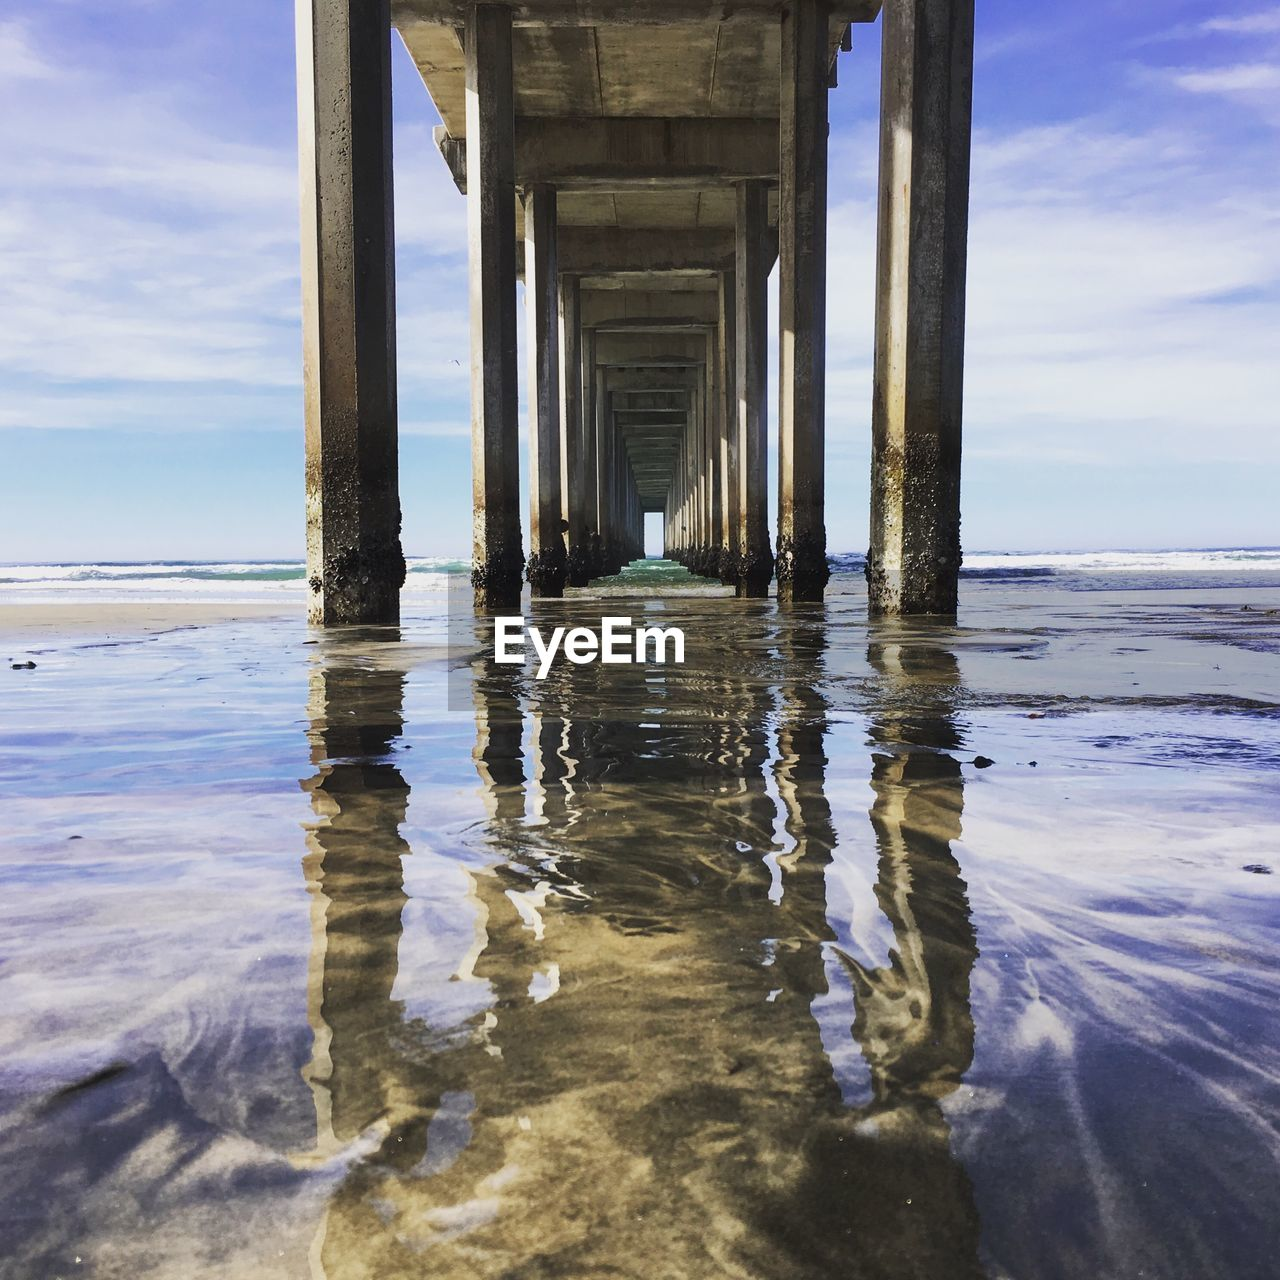 water, sea, underneath, nature, tranquility, day, pier, cloud - sky, sky, outdoors, below, tranquil scene, scenics, waterfront, architectural column, no people, beauty in nature, horizon over water, architecture, beach, built structure, under